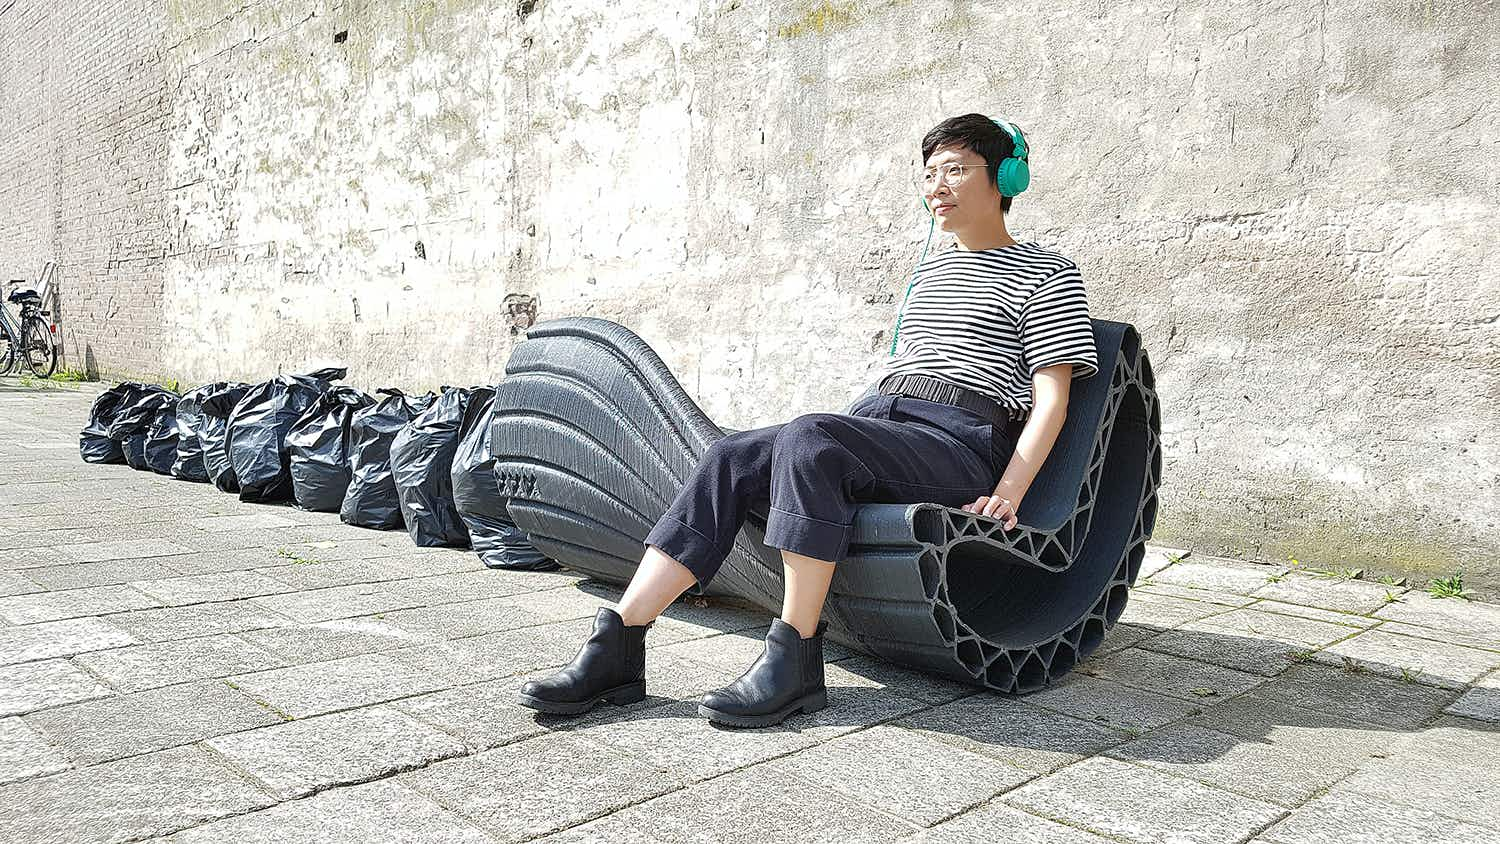 Print your city: project turns plastic waste into urban furniture